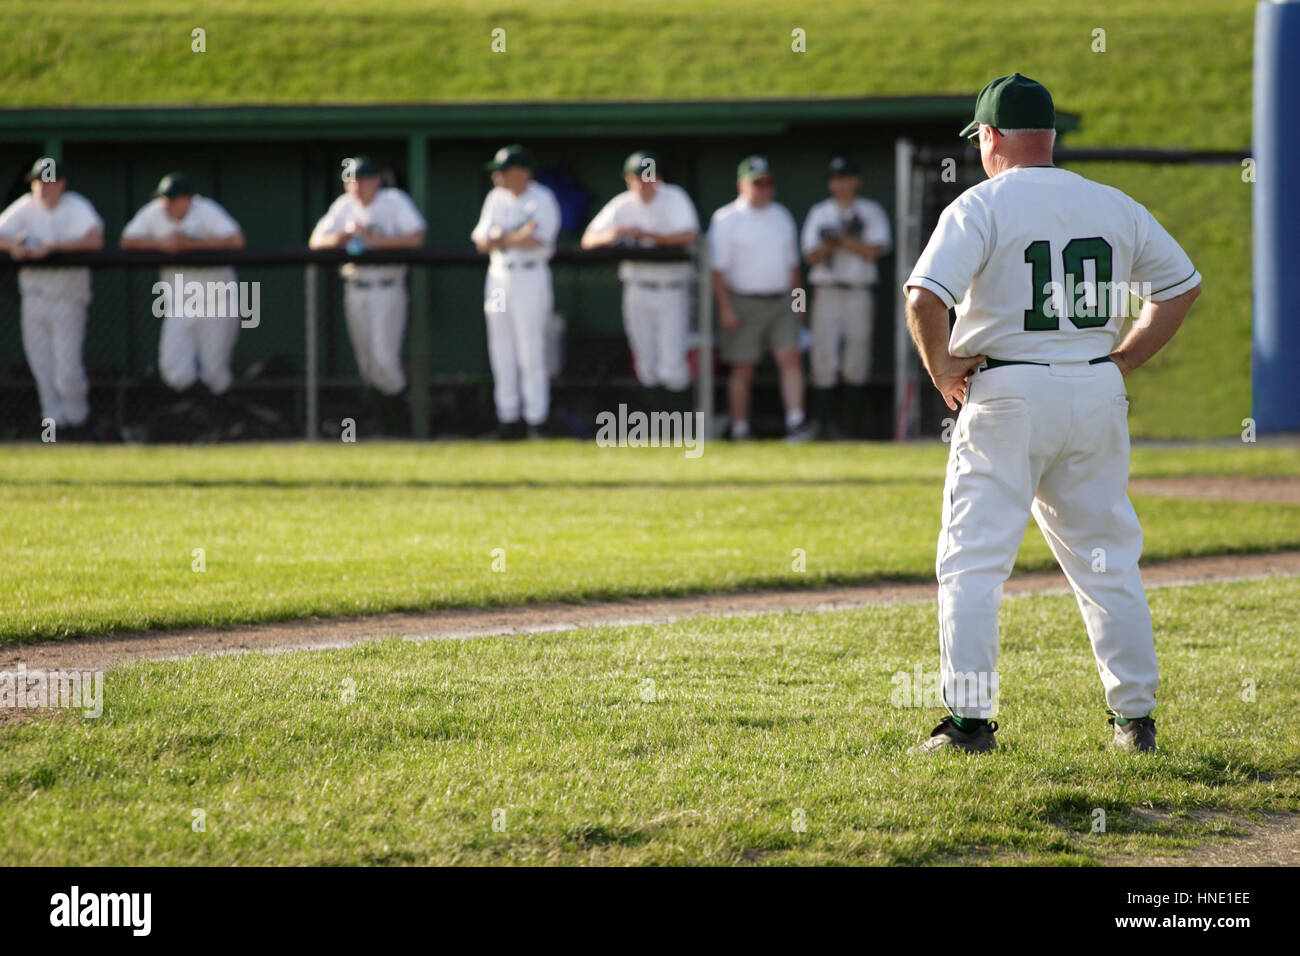 Coach looking at baseball team in dugout - Stock Image